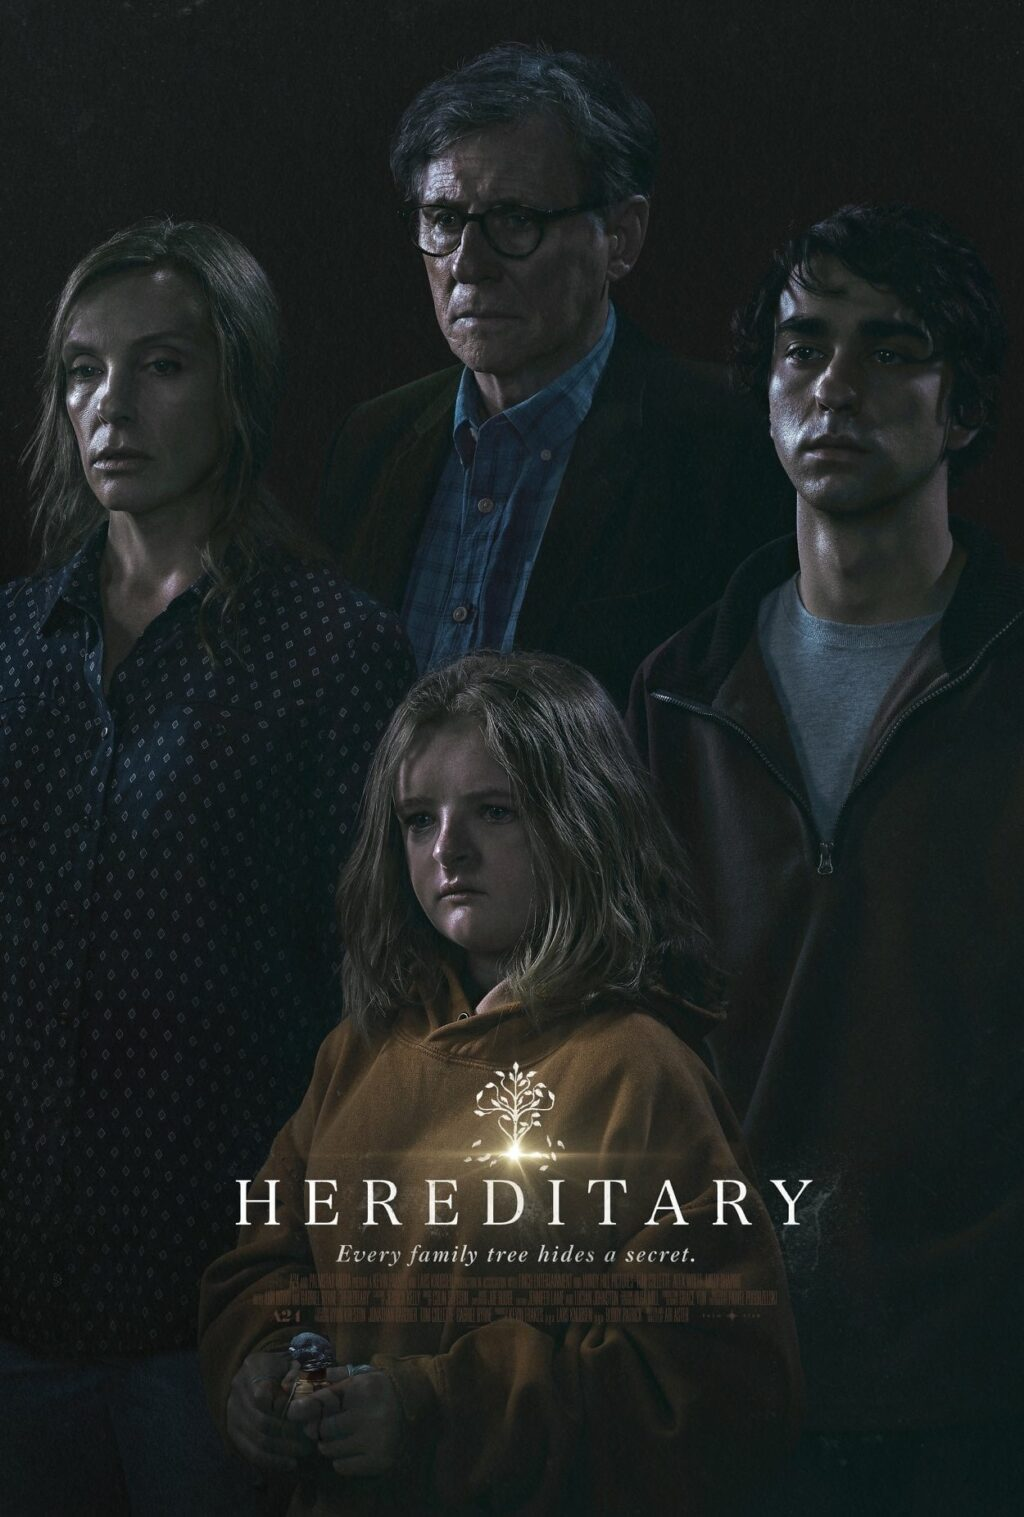 Hereditary 1 1024x1517 - How Prestige Award Shows' Dismissal of the Horror Genre Fails Women